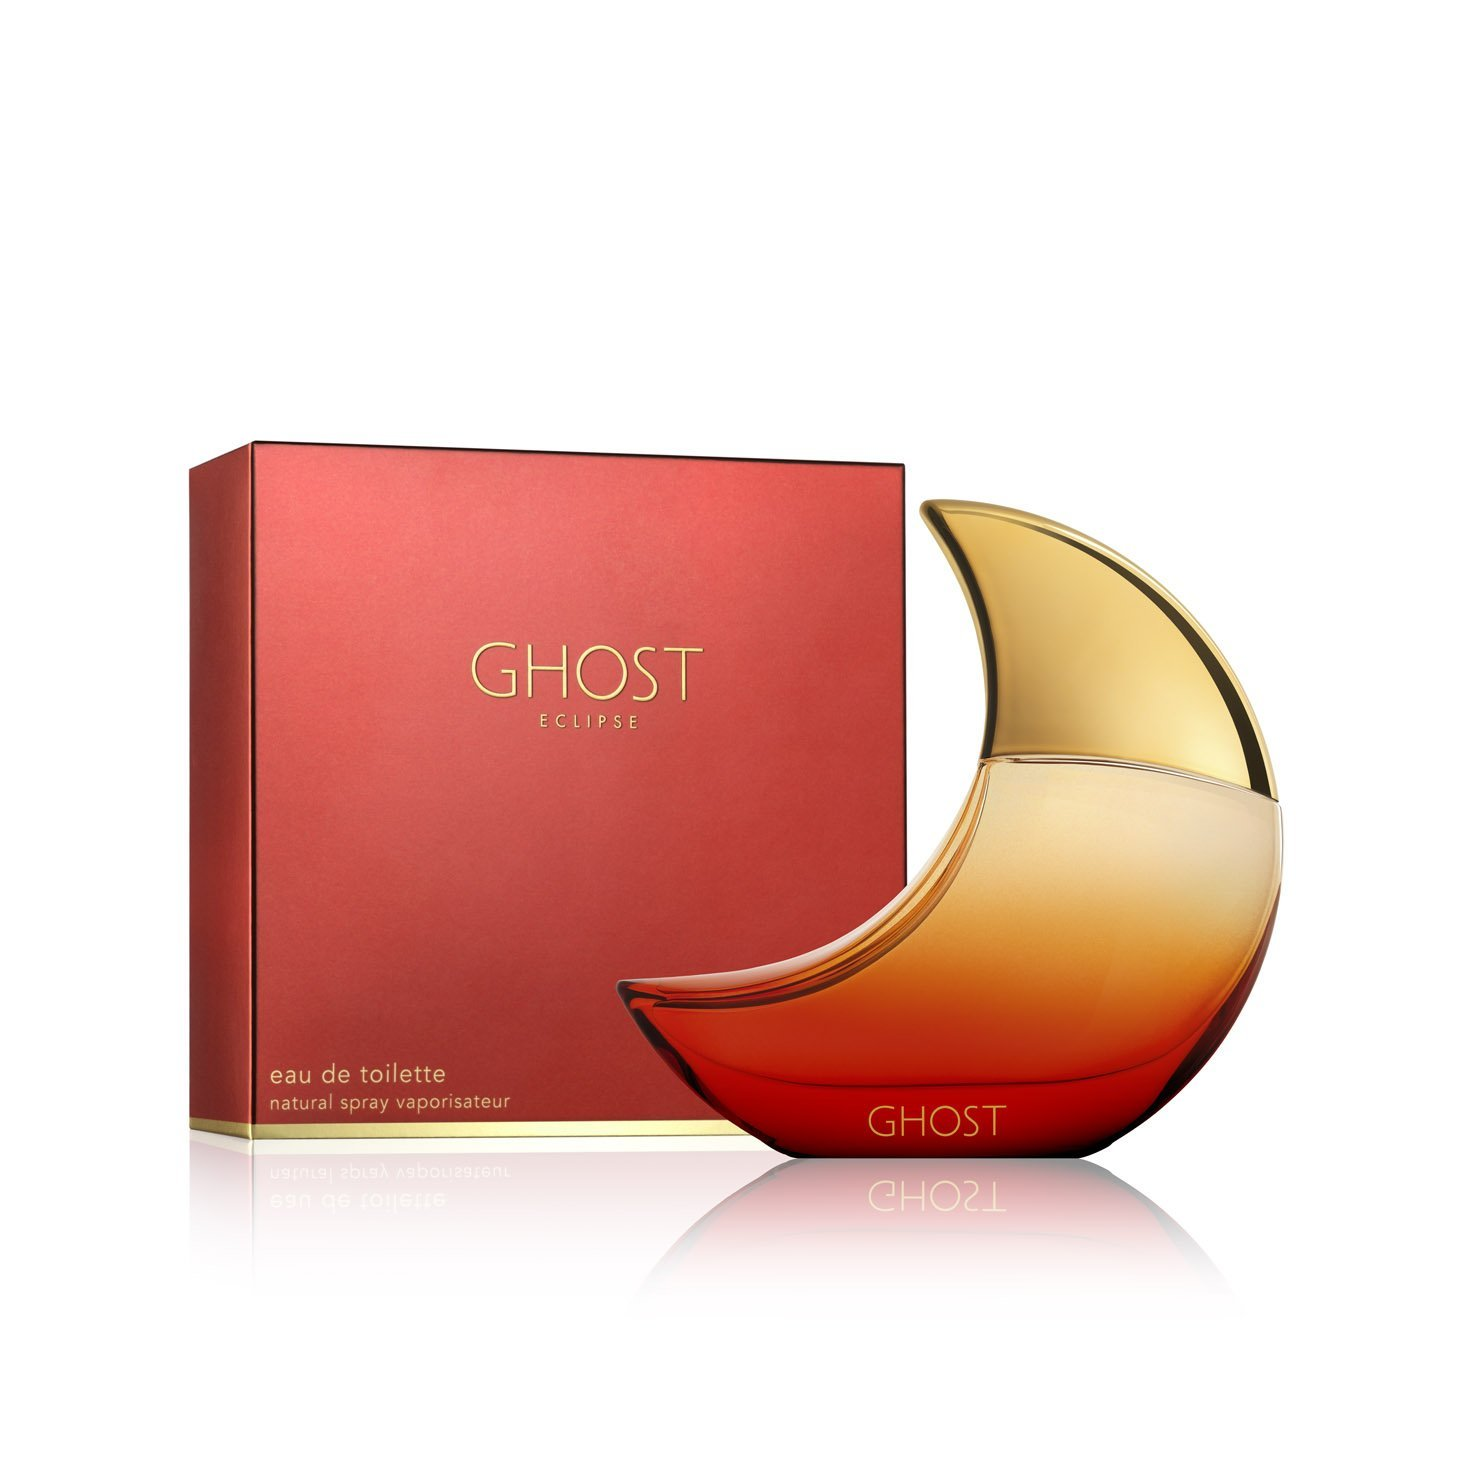 Eclipse (Ghost)